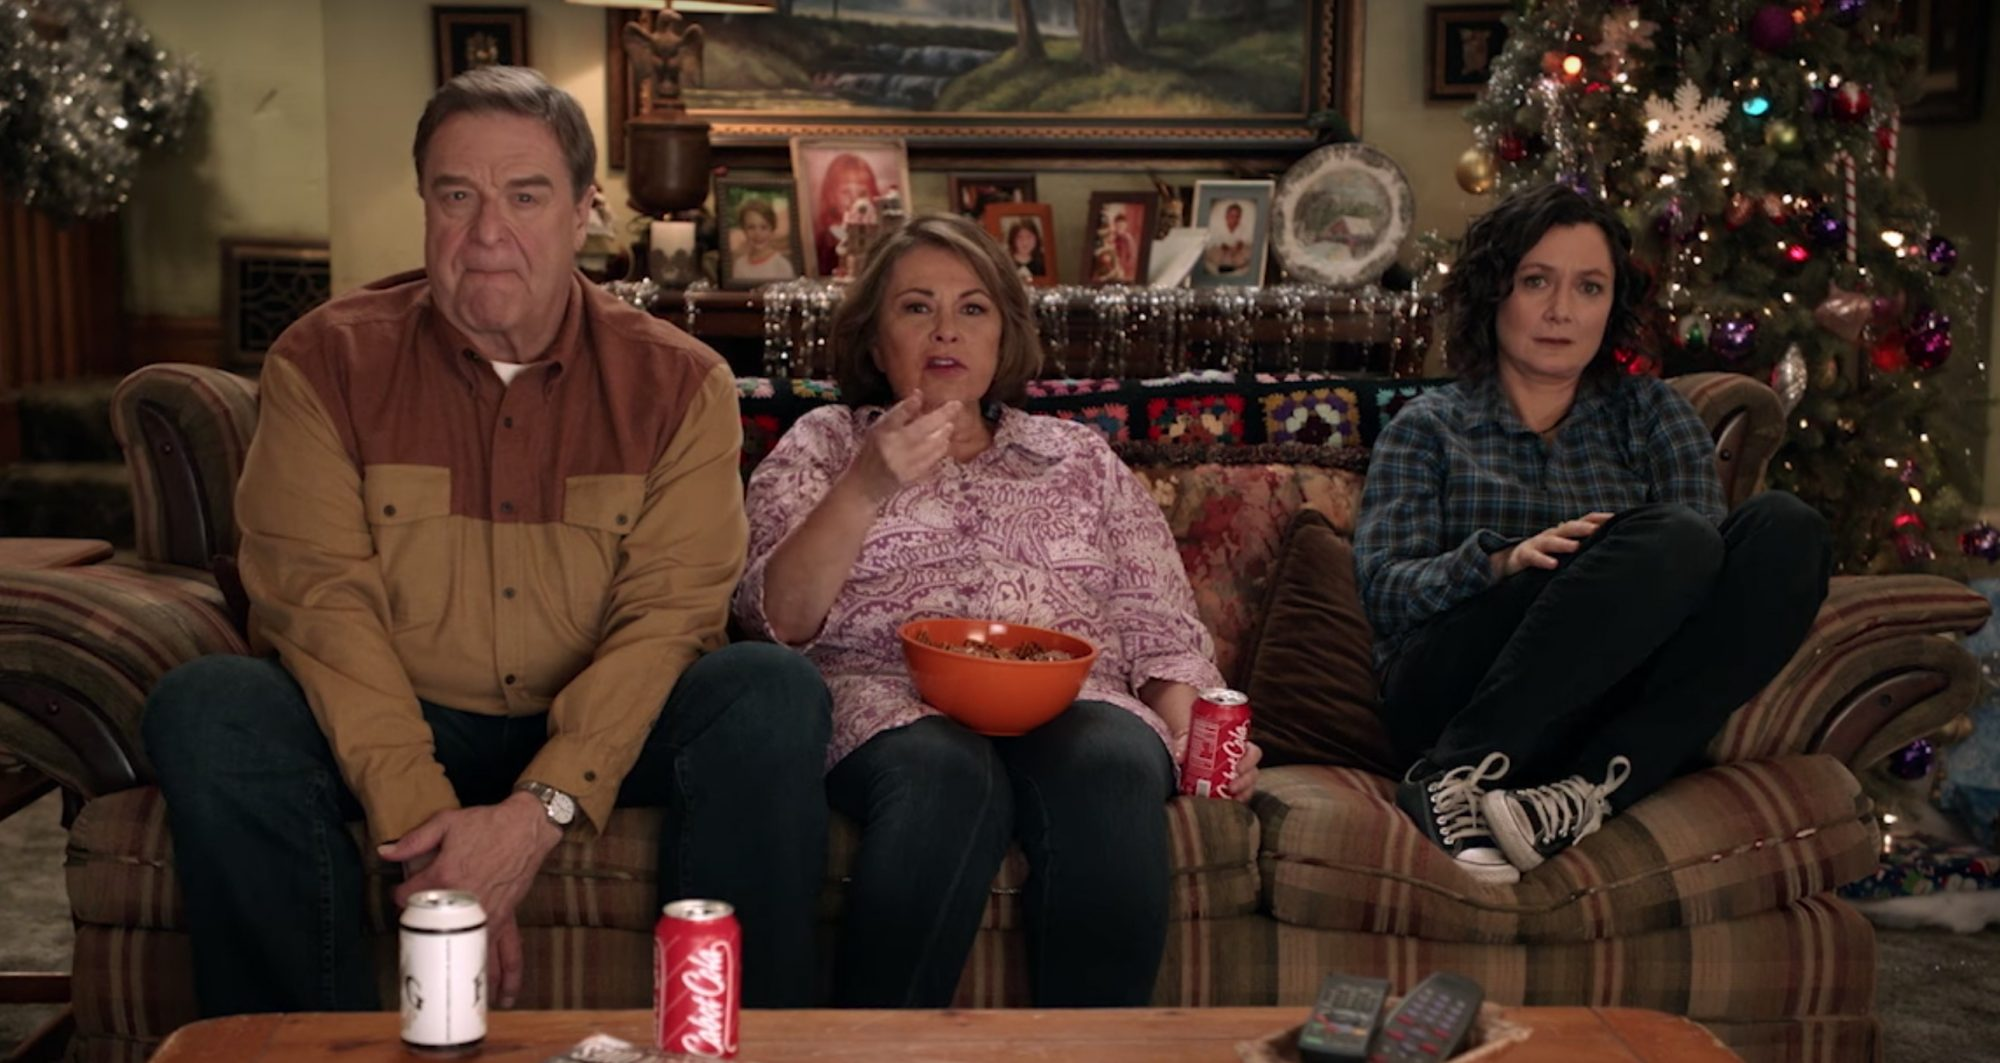 John Goodman, Roseanne Barr and Sara Gilbert in Roseanne  Credit ABC